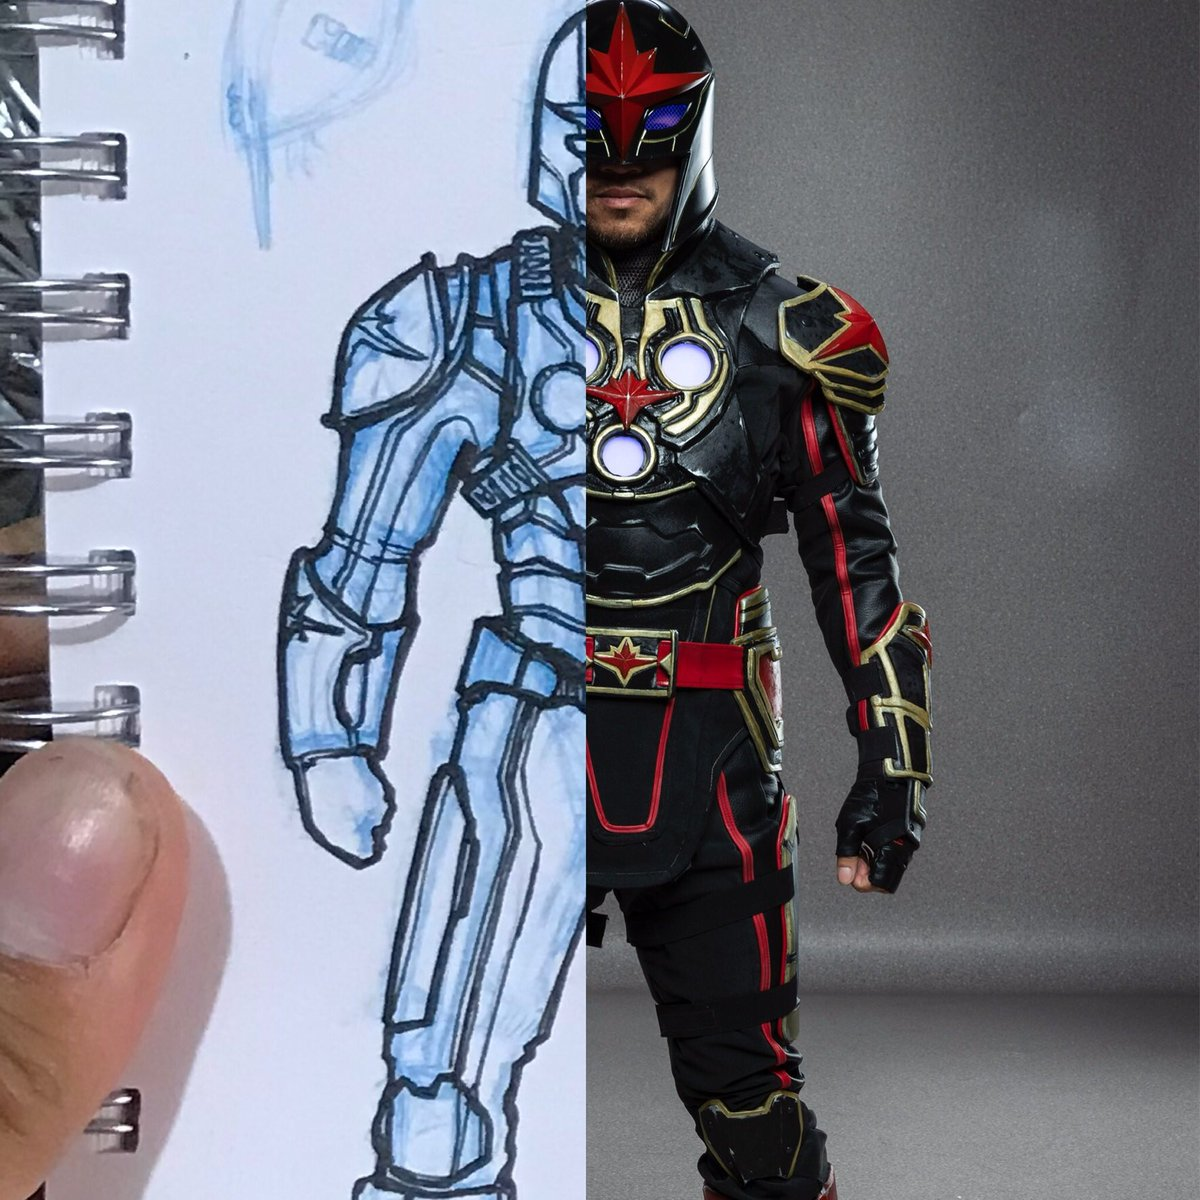 First Nova concept and the finish costume! #conceptart #costumedesign #marvel #novacosplay #nzcosplay #worblapic.twitter.com/jGf7obva8p